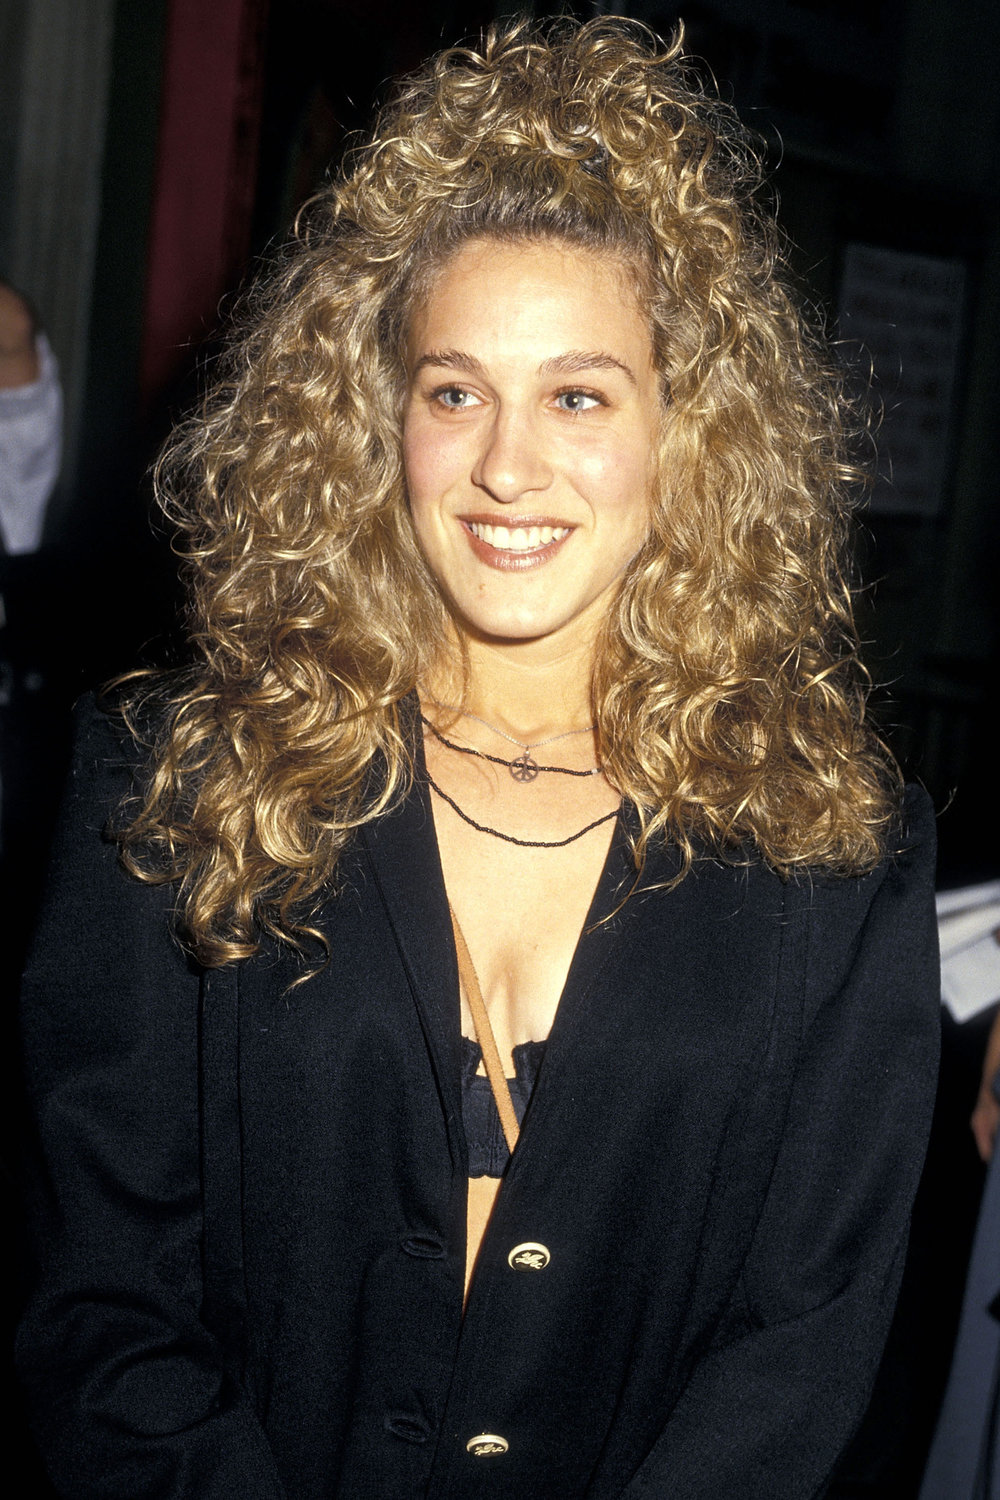 Photo      Even SJP had the perm.